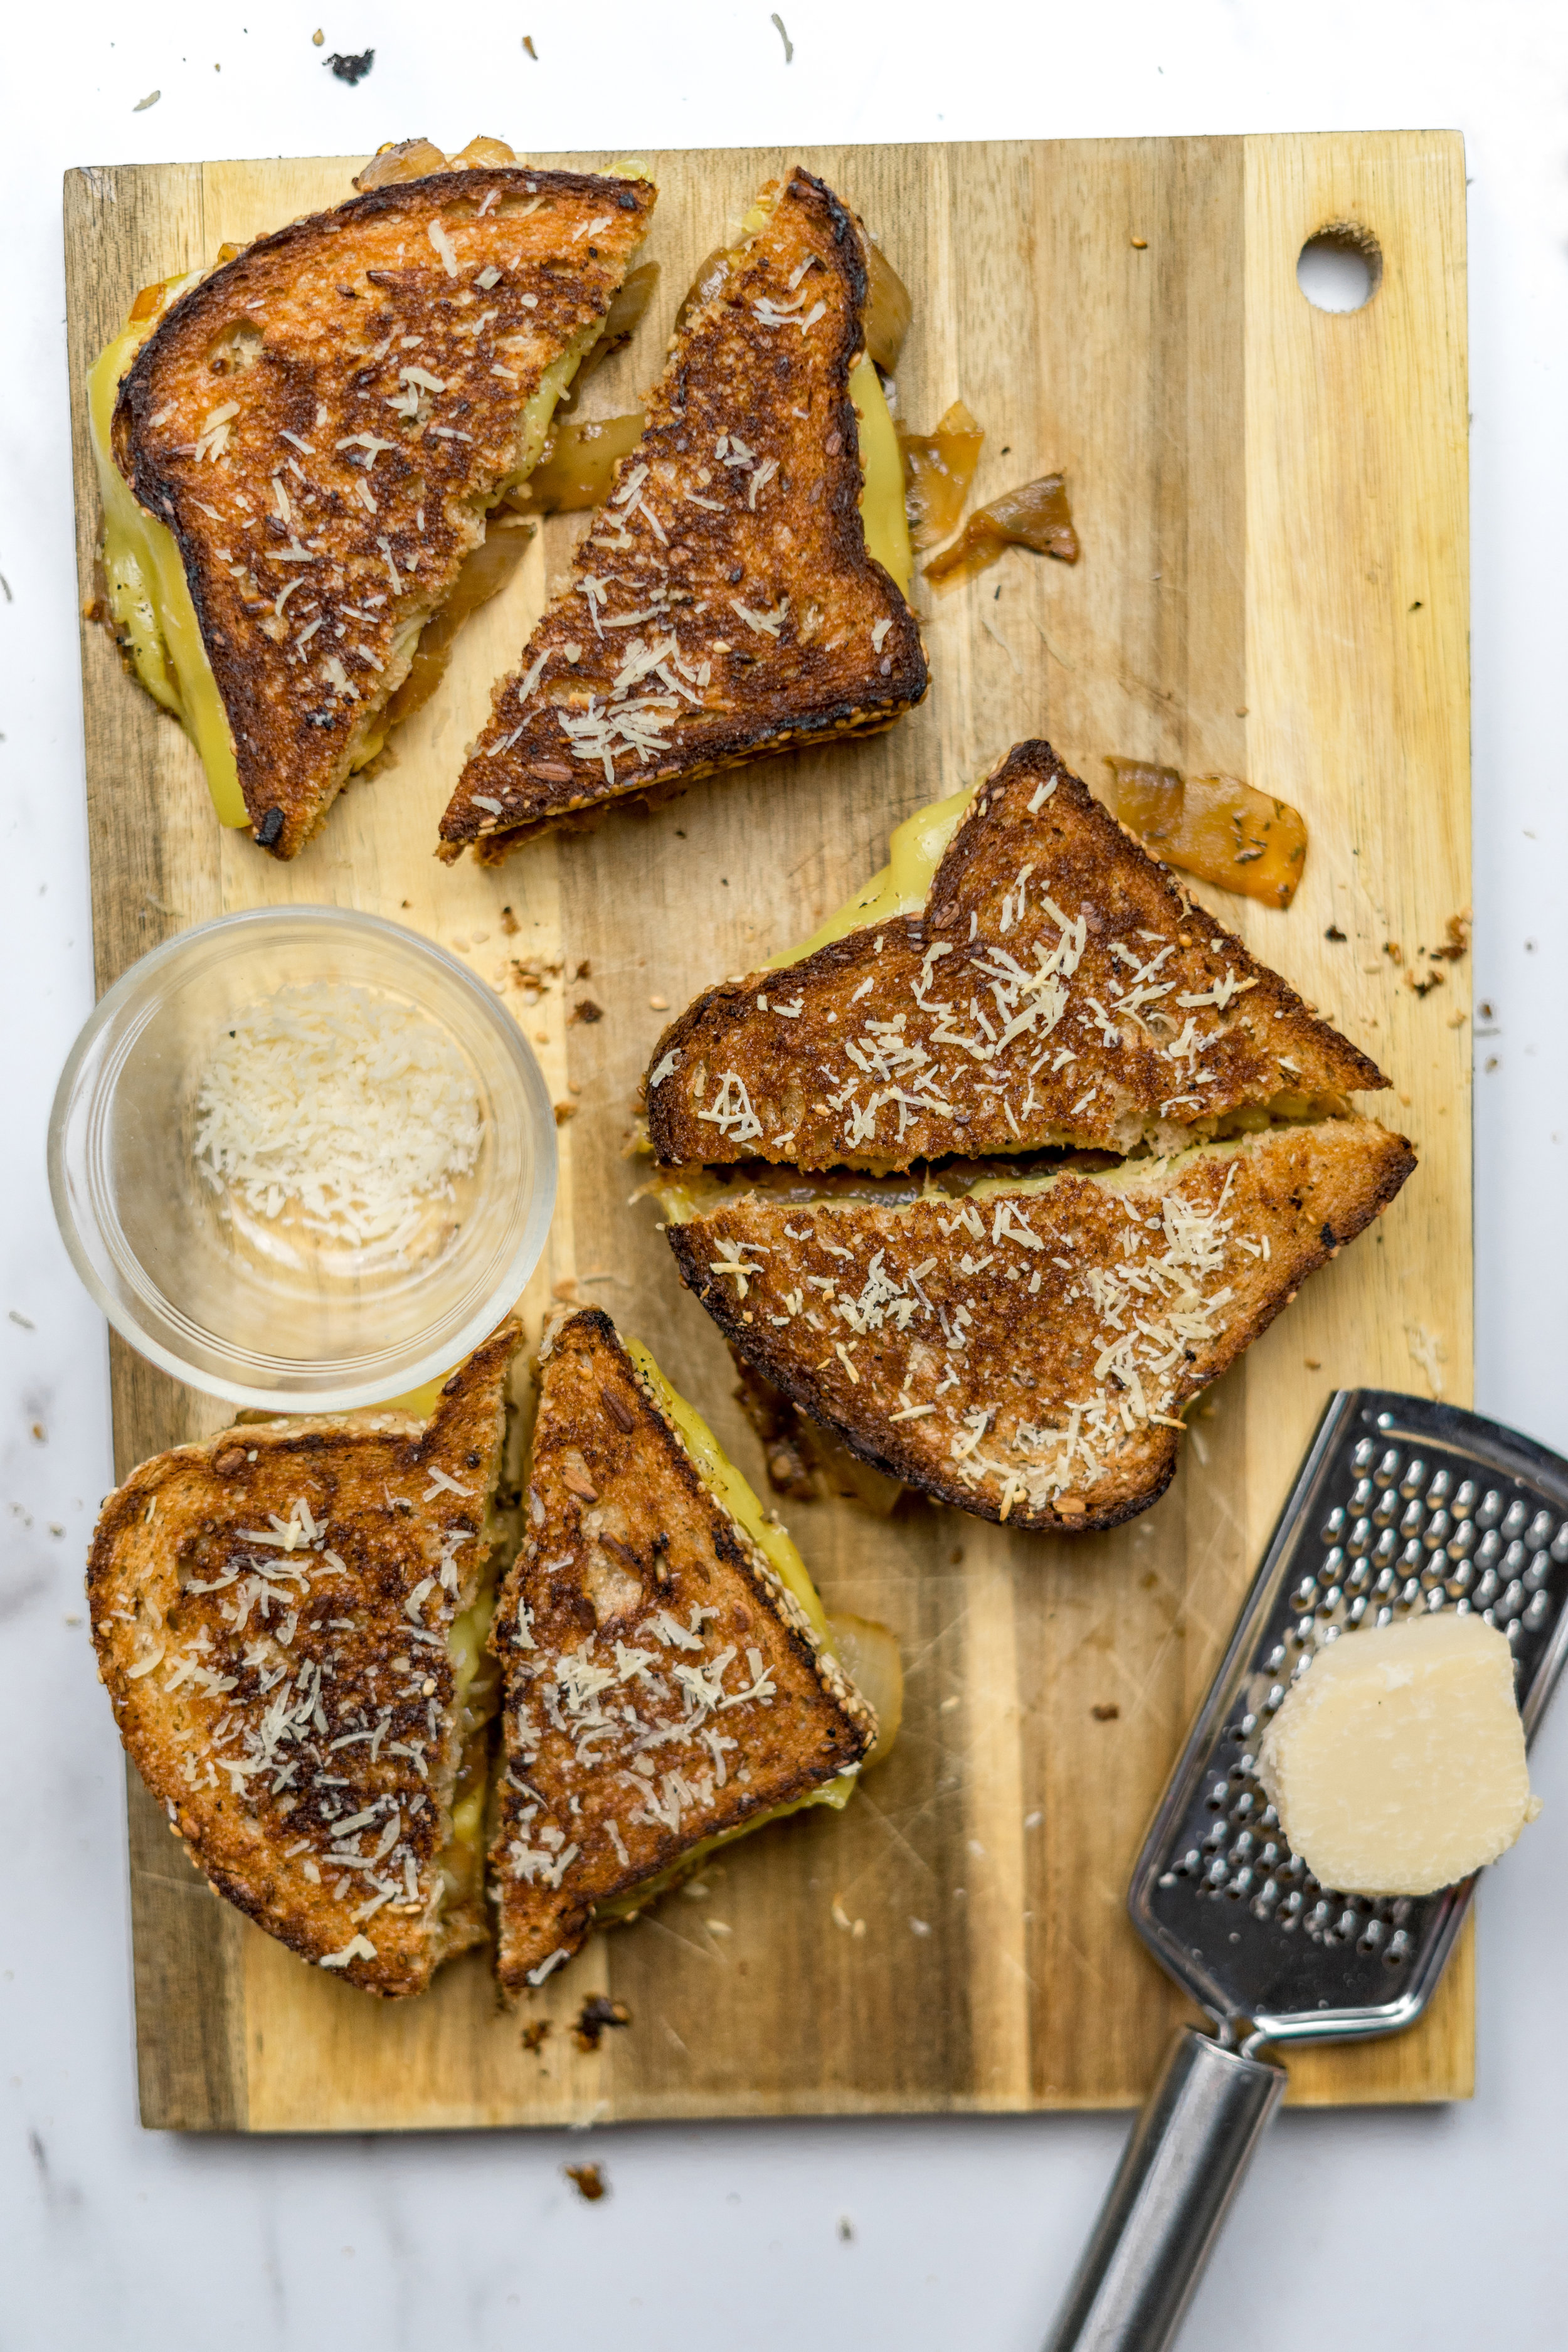 vegan grilled cheese recipe, how to make the best grilled cheese, french onion soup recipe, how to caramelize onions, vegan grilled cheese, the best vegan cheese at whole foods, where to buy vegan cheese, how to make a grilled cheese, french onion, vegan french onion soup, i am rorie, i am rorie recipes, vegan chicago food blogger, vegan food blogger, i am rorie vegan food, the best vegan grilled cheese recipe, how to make a grilled cheese vegan, how can i make a grilled cheese vegan, sweet onions, thyme, vegetable broth, multi grain bread, smoked provolone, violife foods, vegan cheese, vegan smoked provolone, vegan provolone, vegan parmesan, best vegan parmesan, violife parmesan wedge